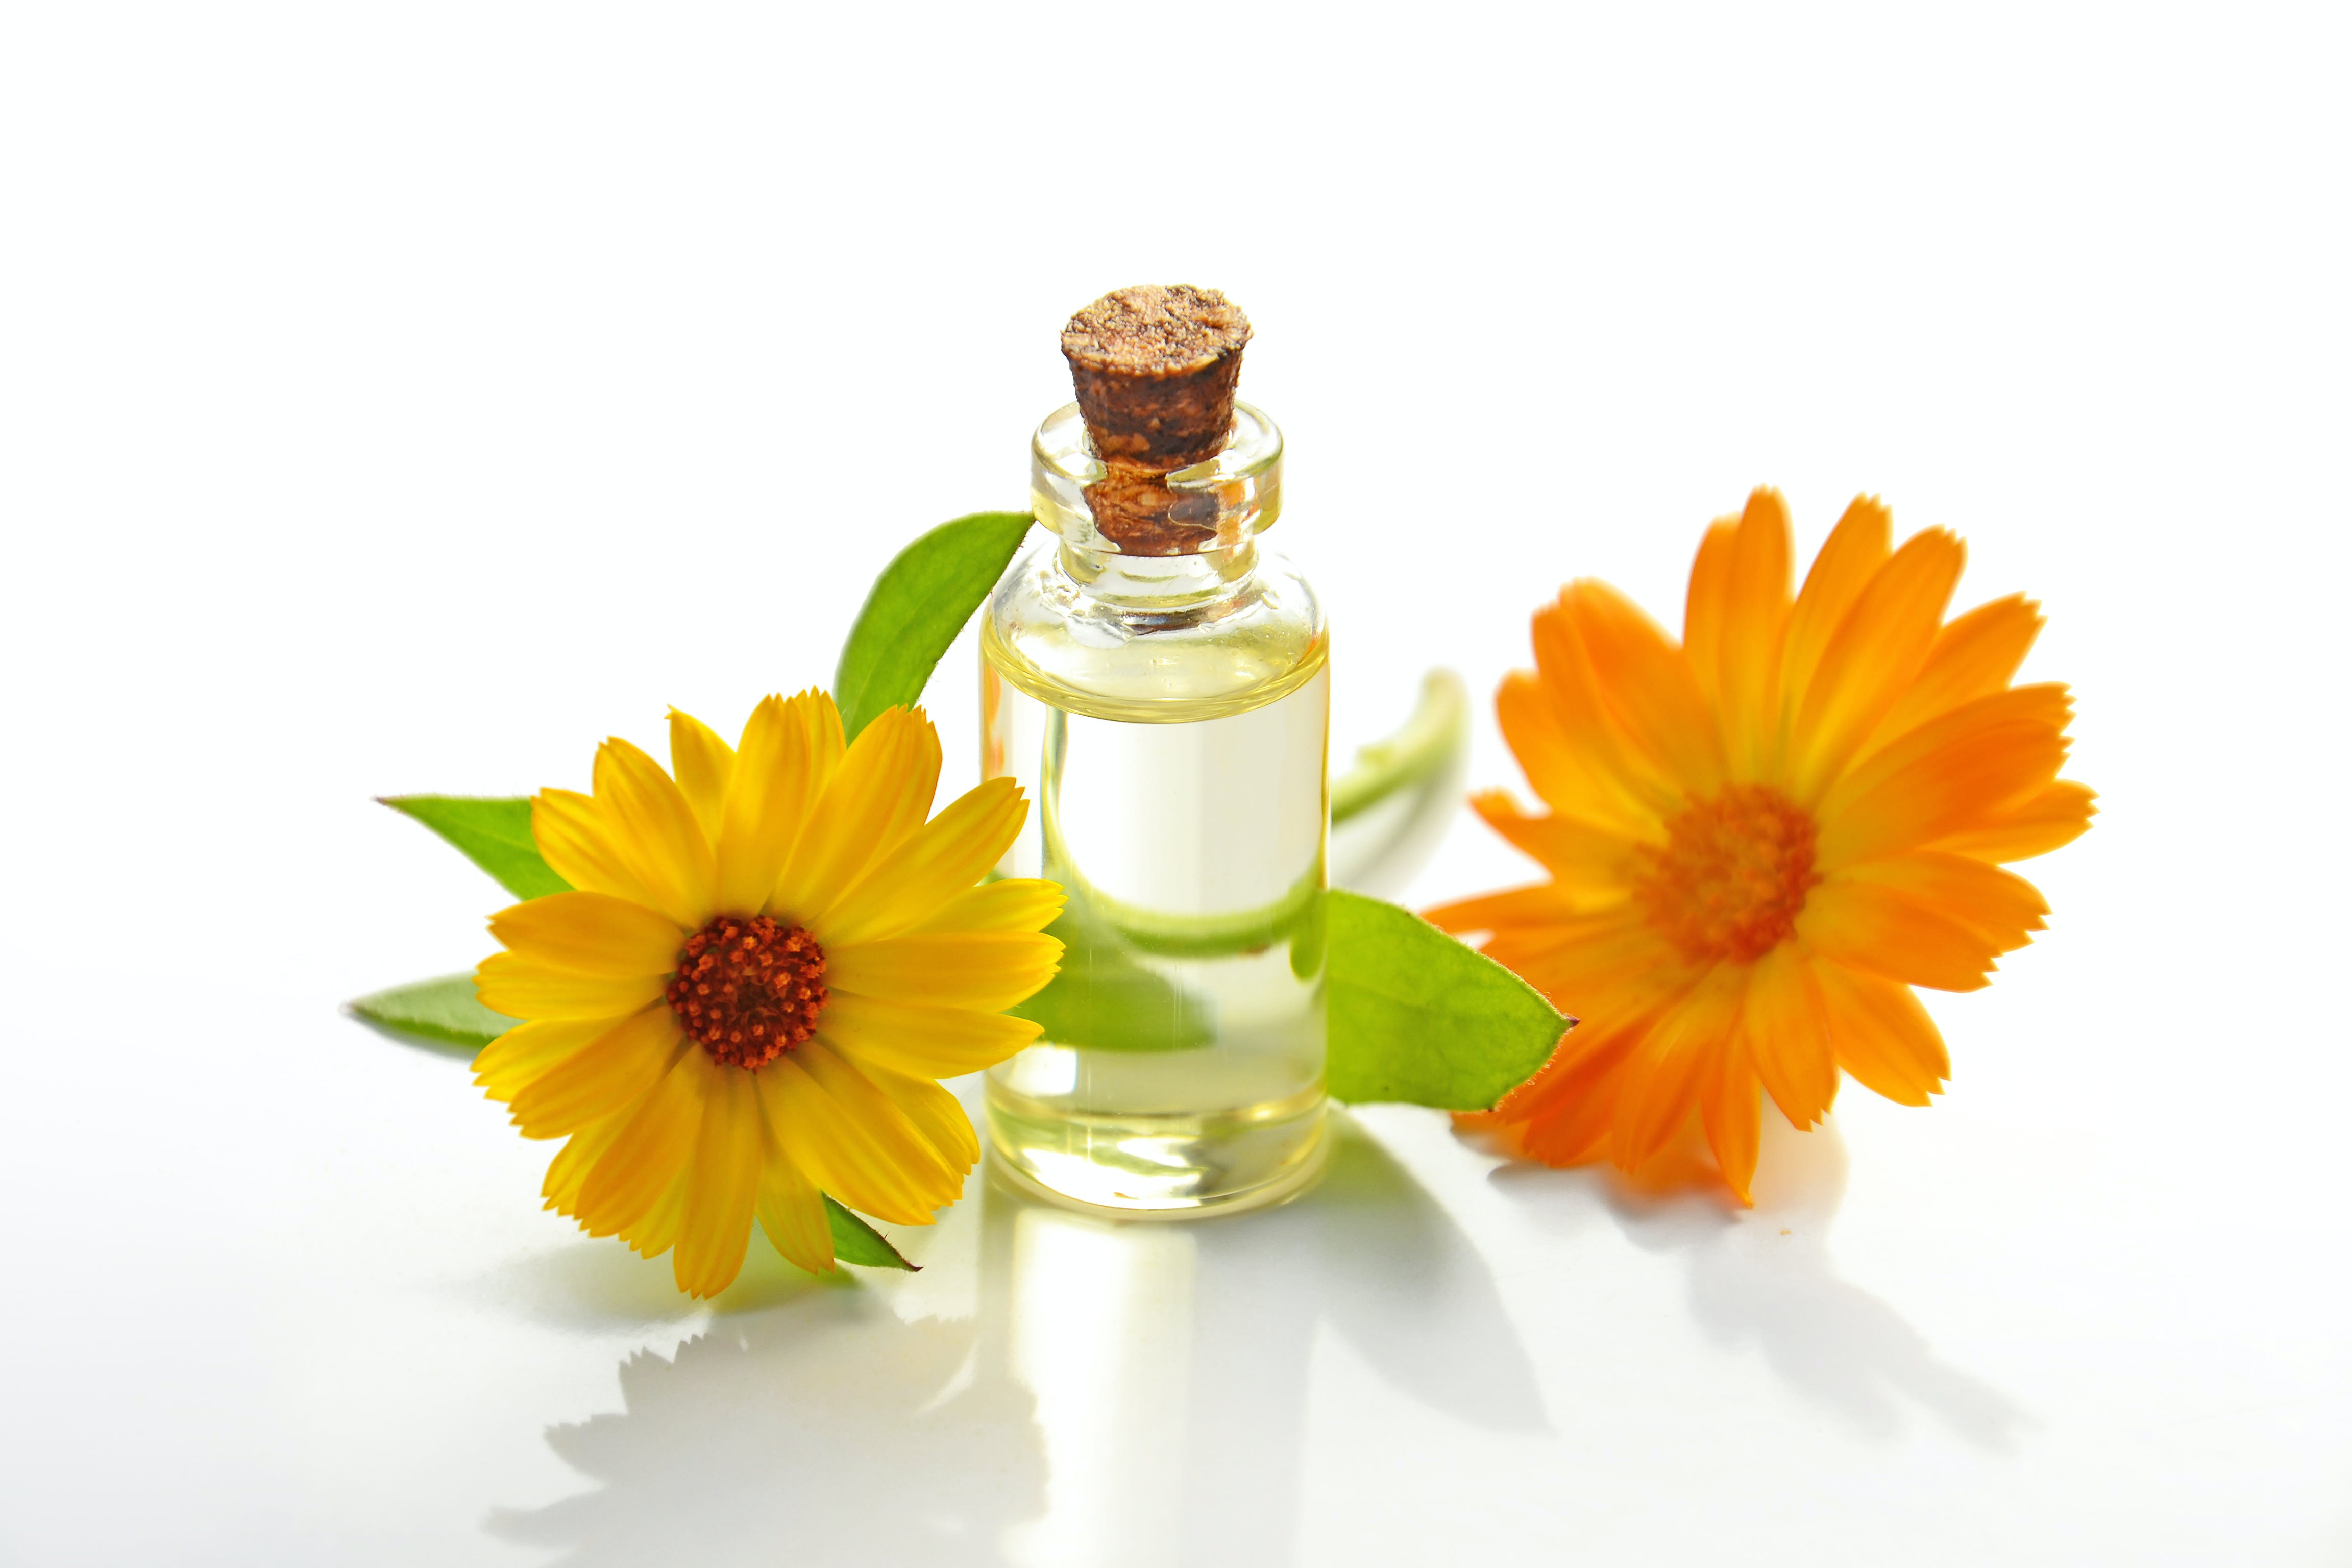 Two Yellow Sunflowers With Clear Glass Bottle With Cork Lid